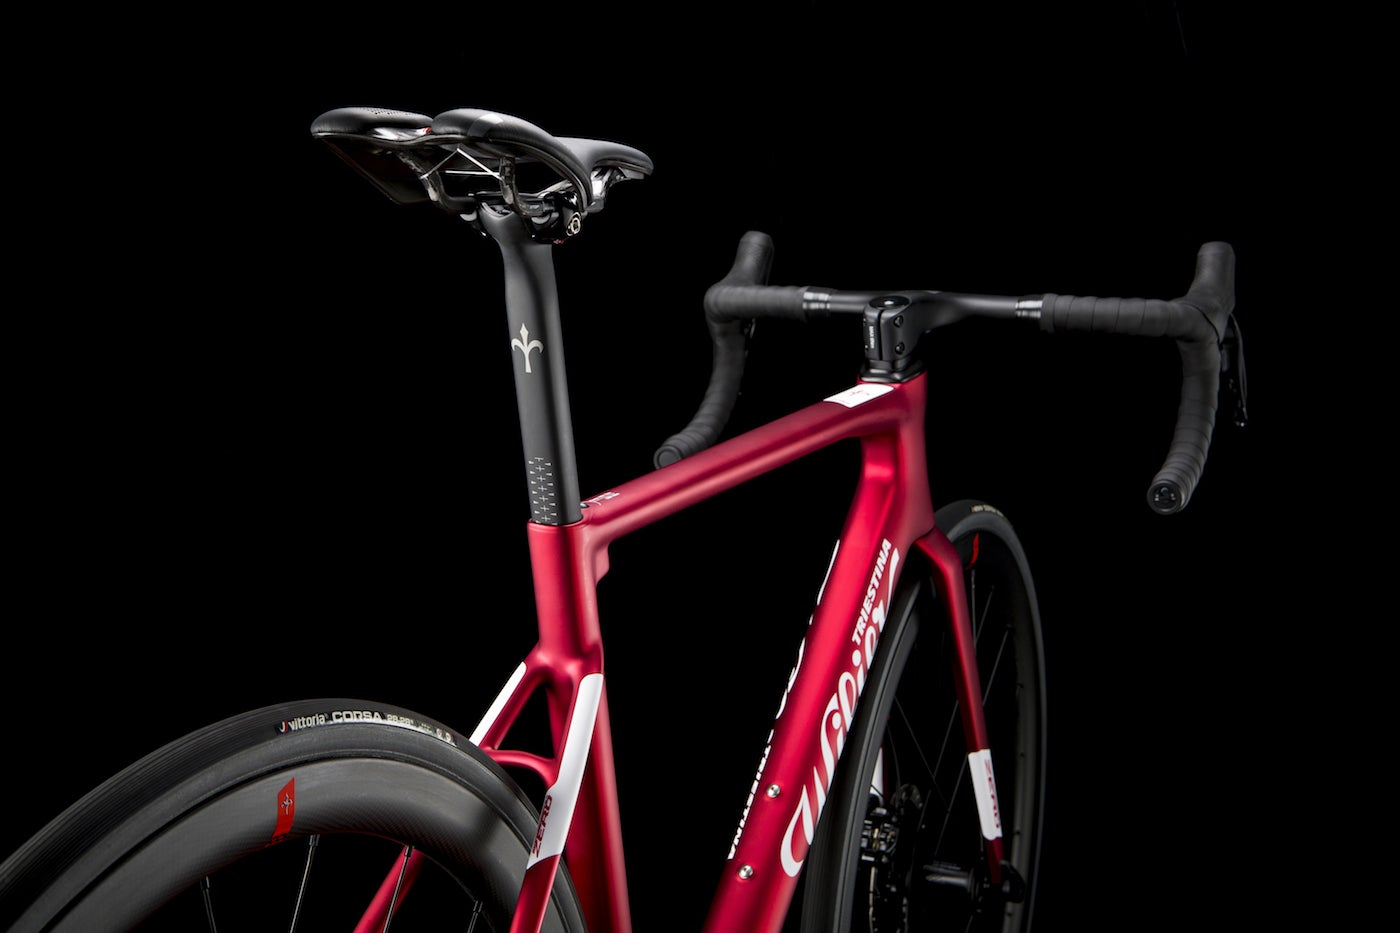 Seriously Slick The Wilier Zero Slr Peloton Magazine